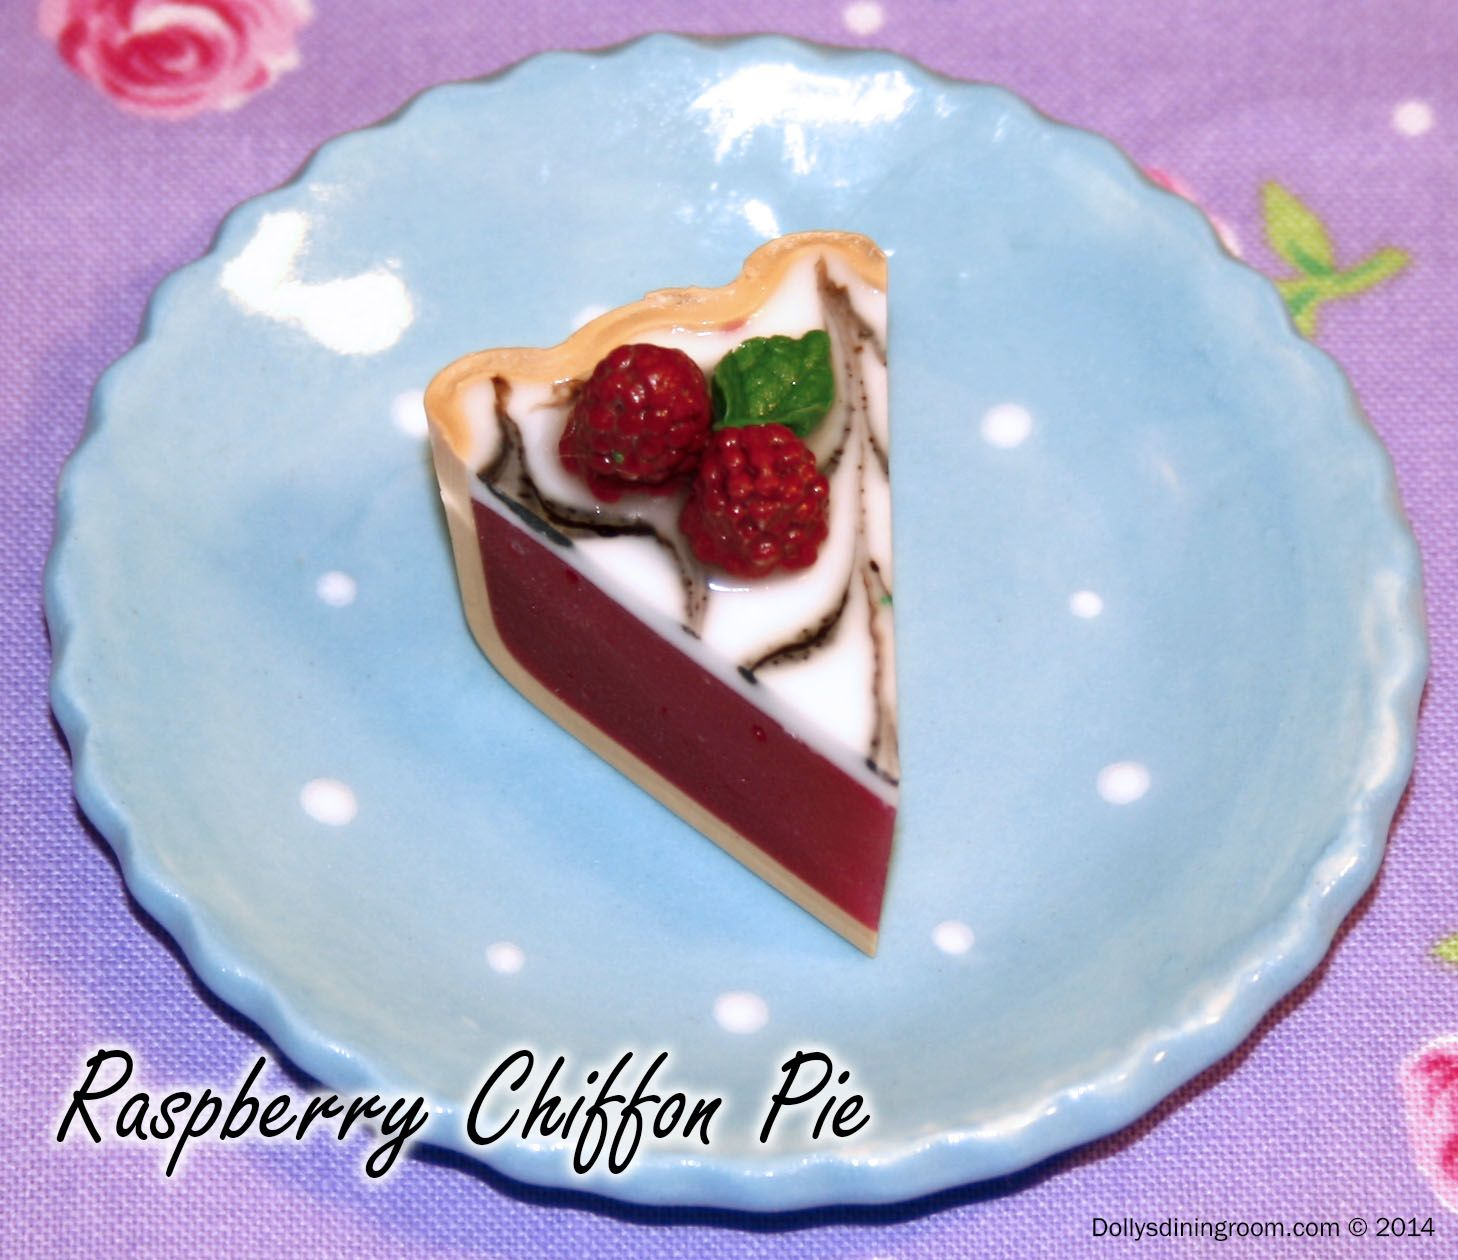 A truly gourmet selection! Dolly simply can't resist this delicate raspberry pie with a marbled top and fresh ripe raspberries. It'll tantalize your tongue!